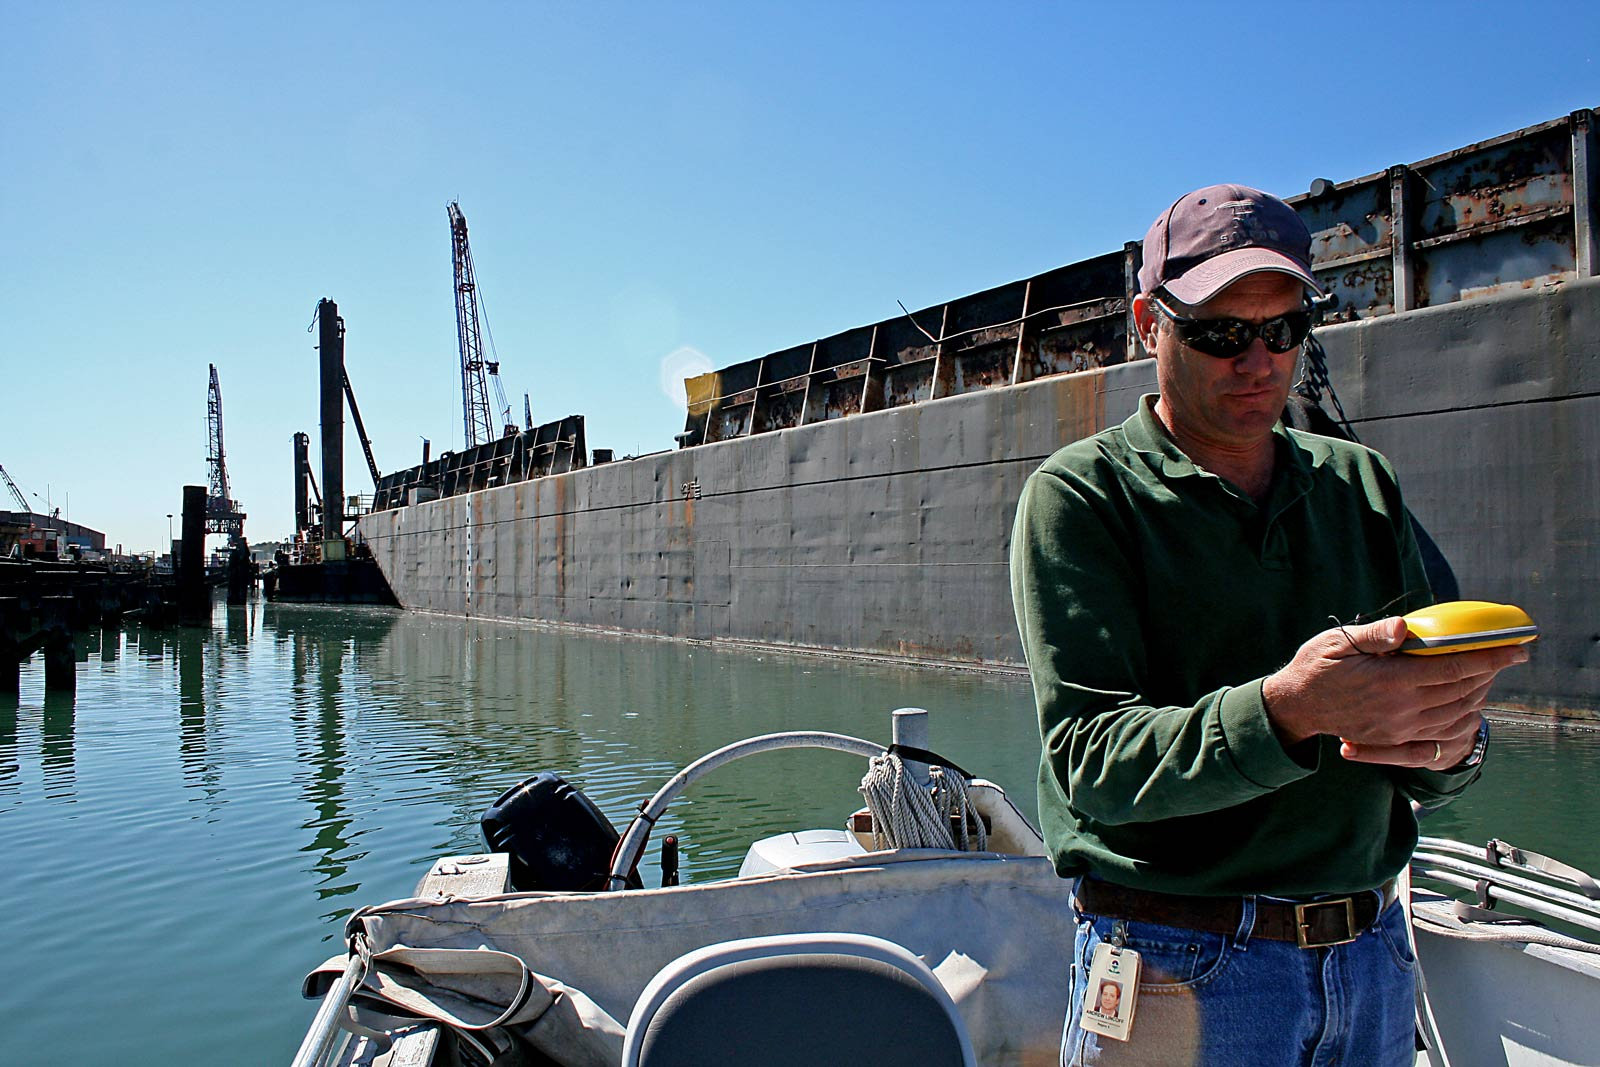 Andrew Lincoff was a part of the EPA subcontracted team that recently collected mussel and sediment samples from the Lauritzen Canal. (Photo by Leah Bartos)